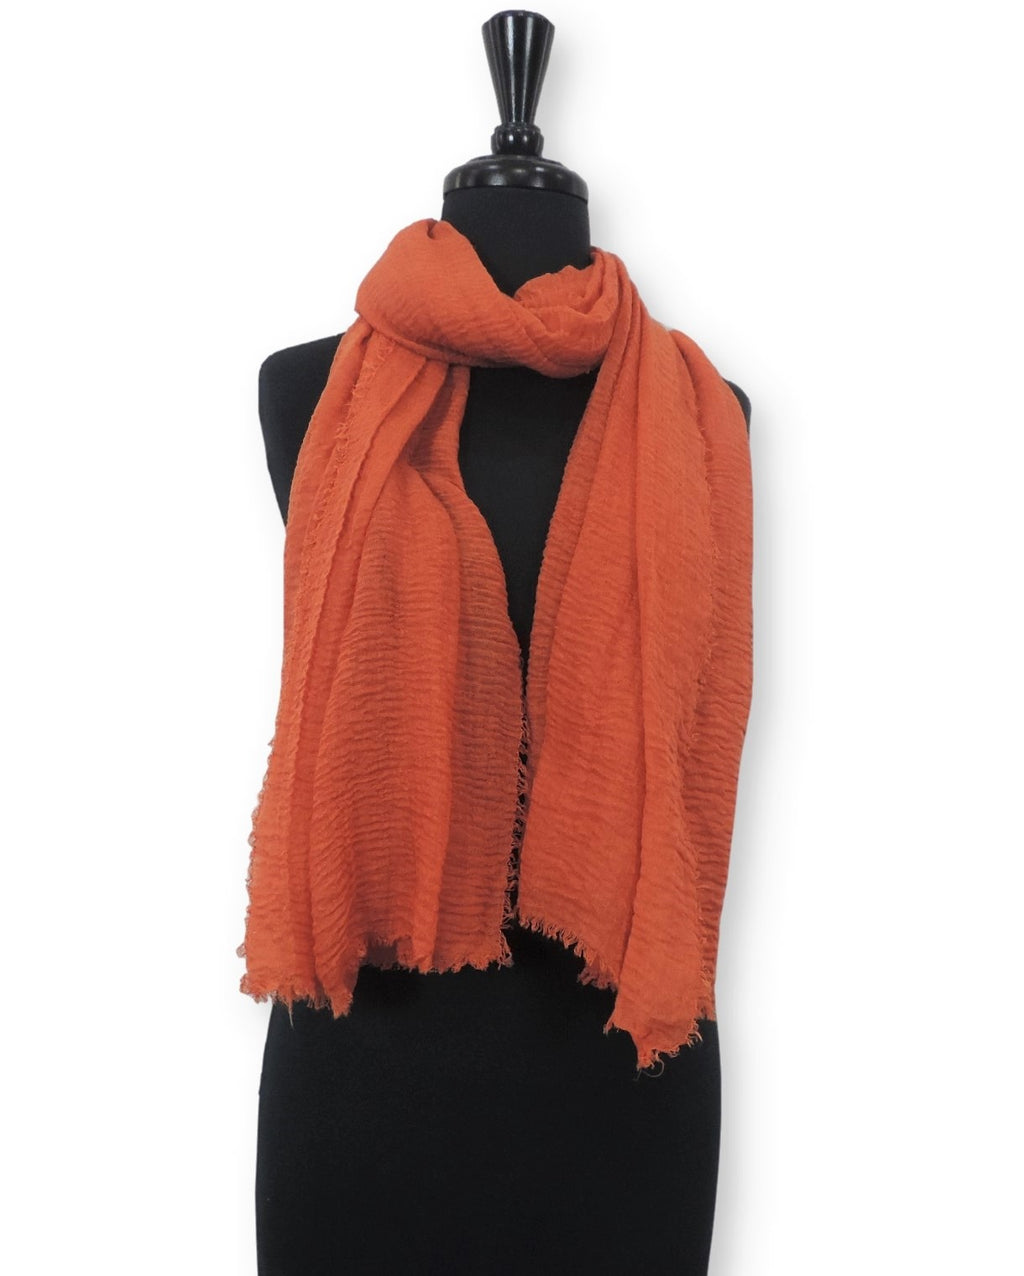 Red Orange Bubble Cotton Scarf - Global Trendz Fashion®